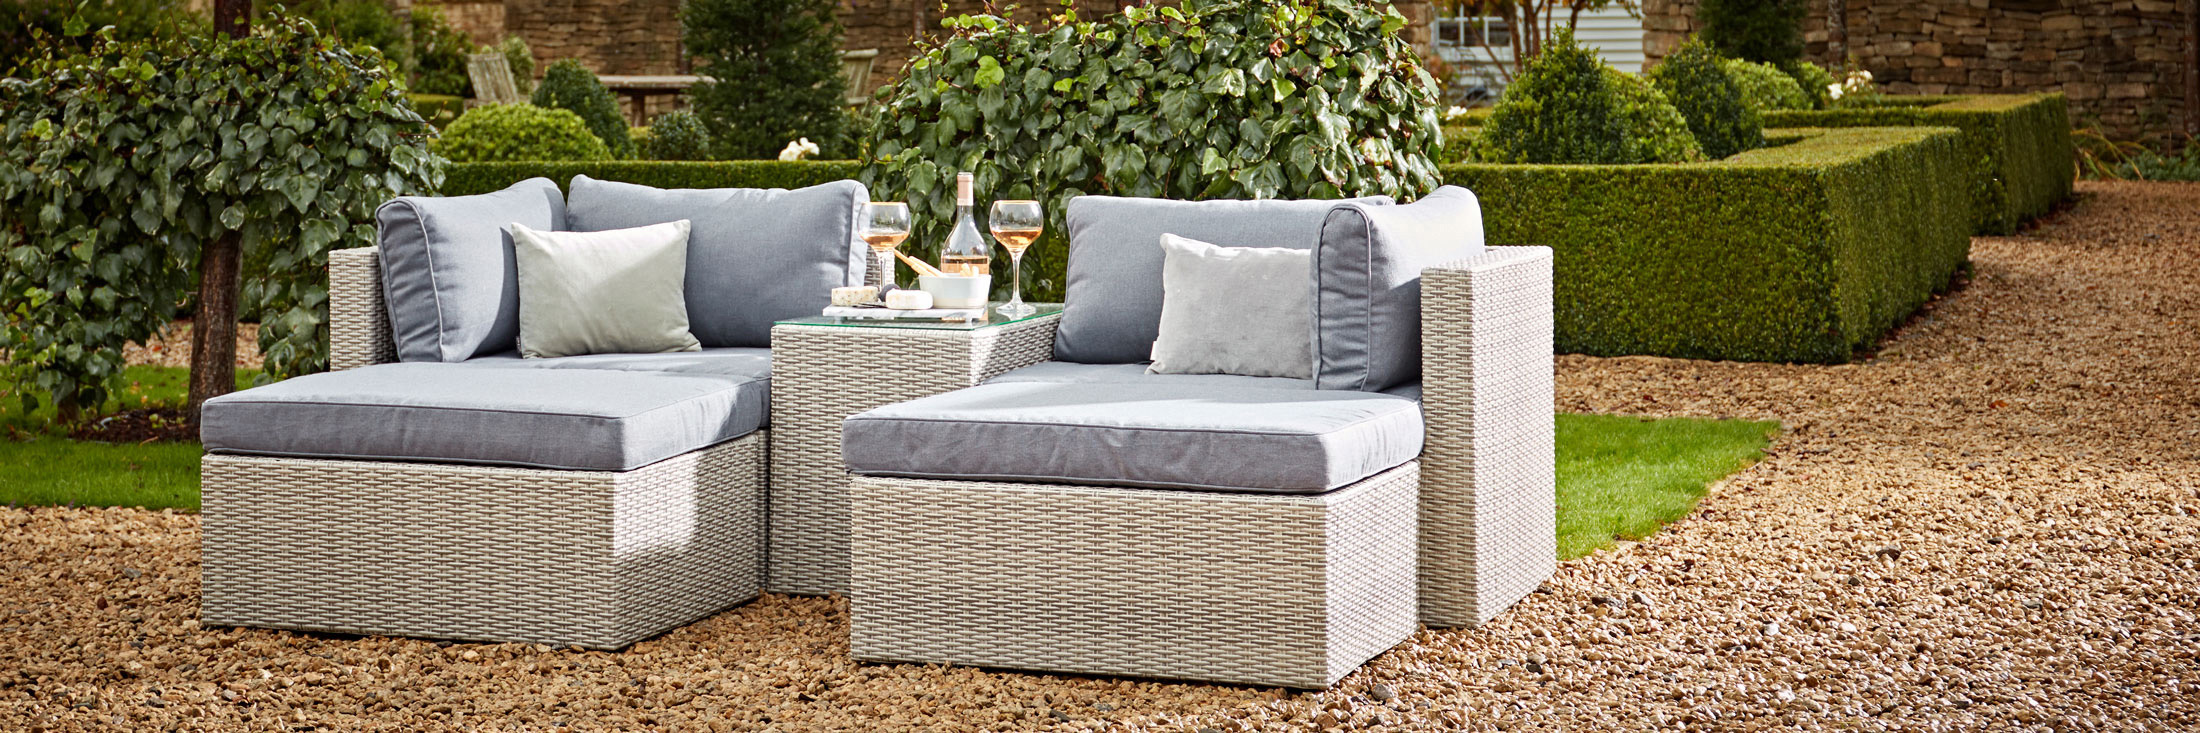 coxandcox.co.uk - Outdoor Furniture starting at just £25.00